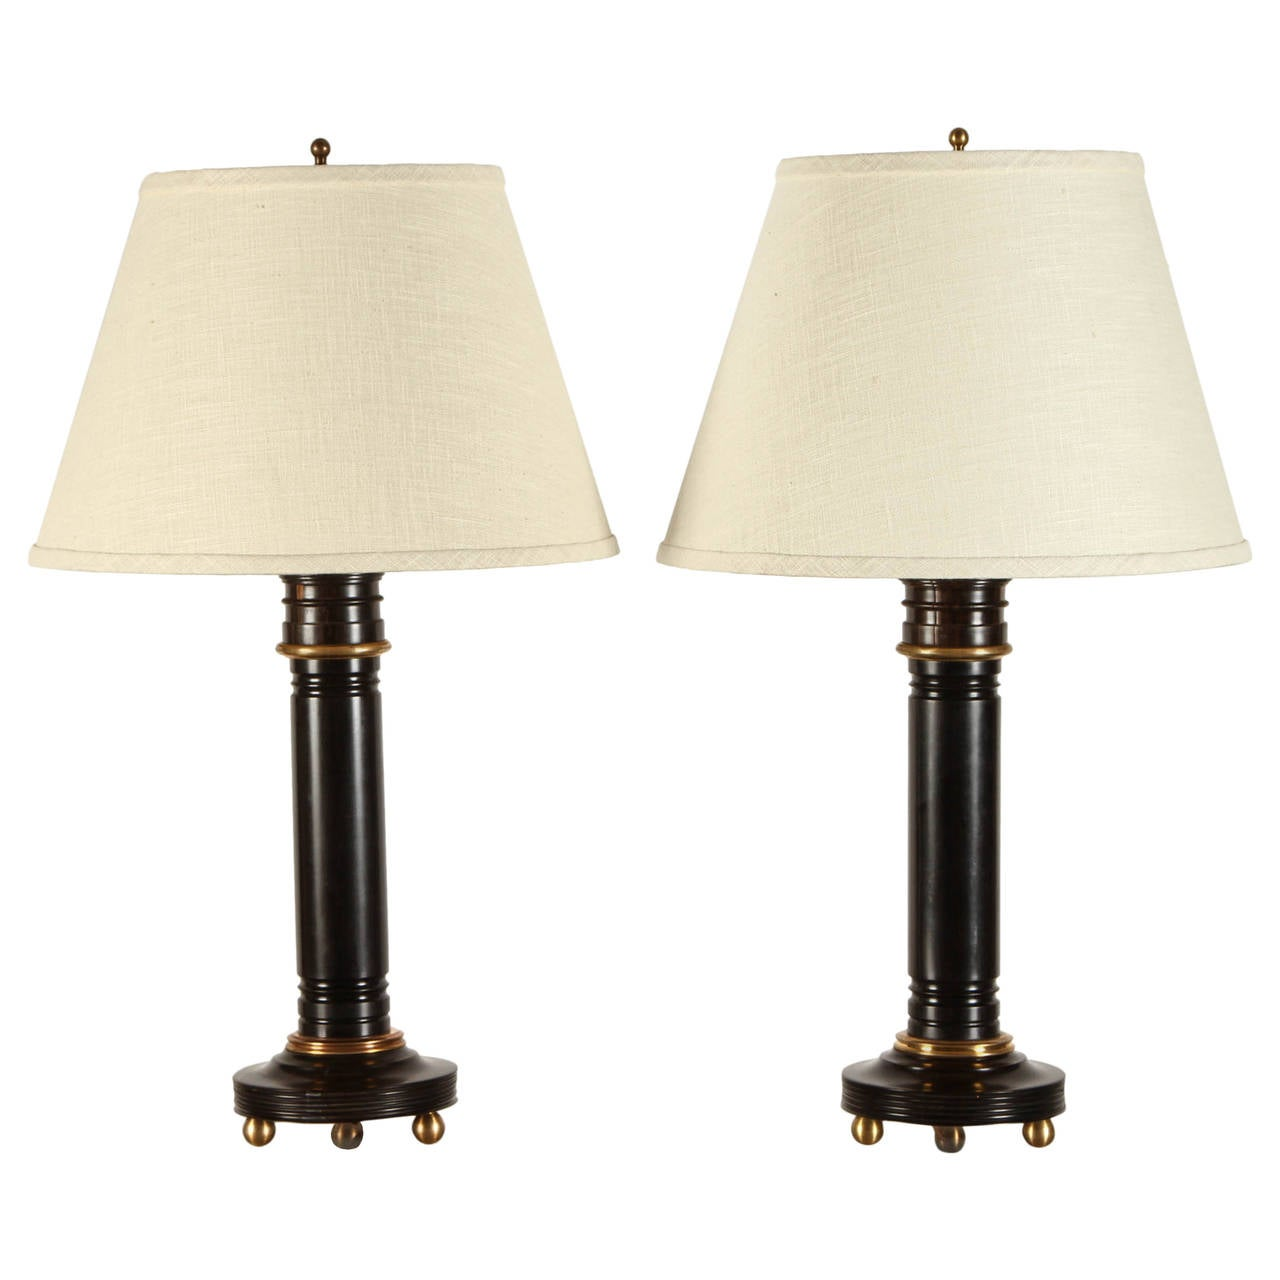 Pair of 20th Century Ebony Lamps